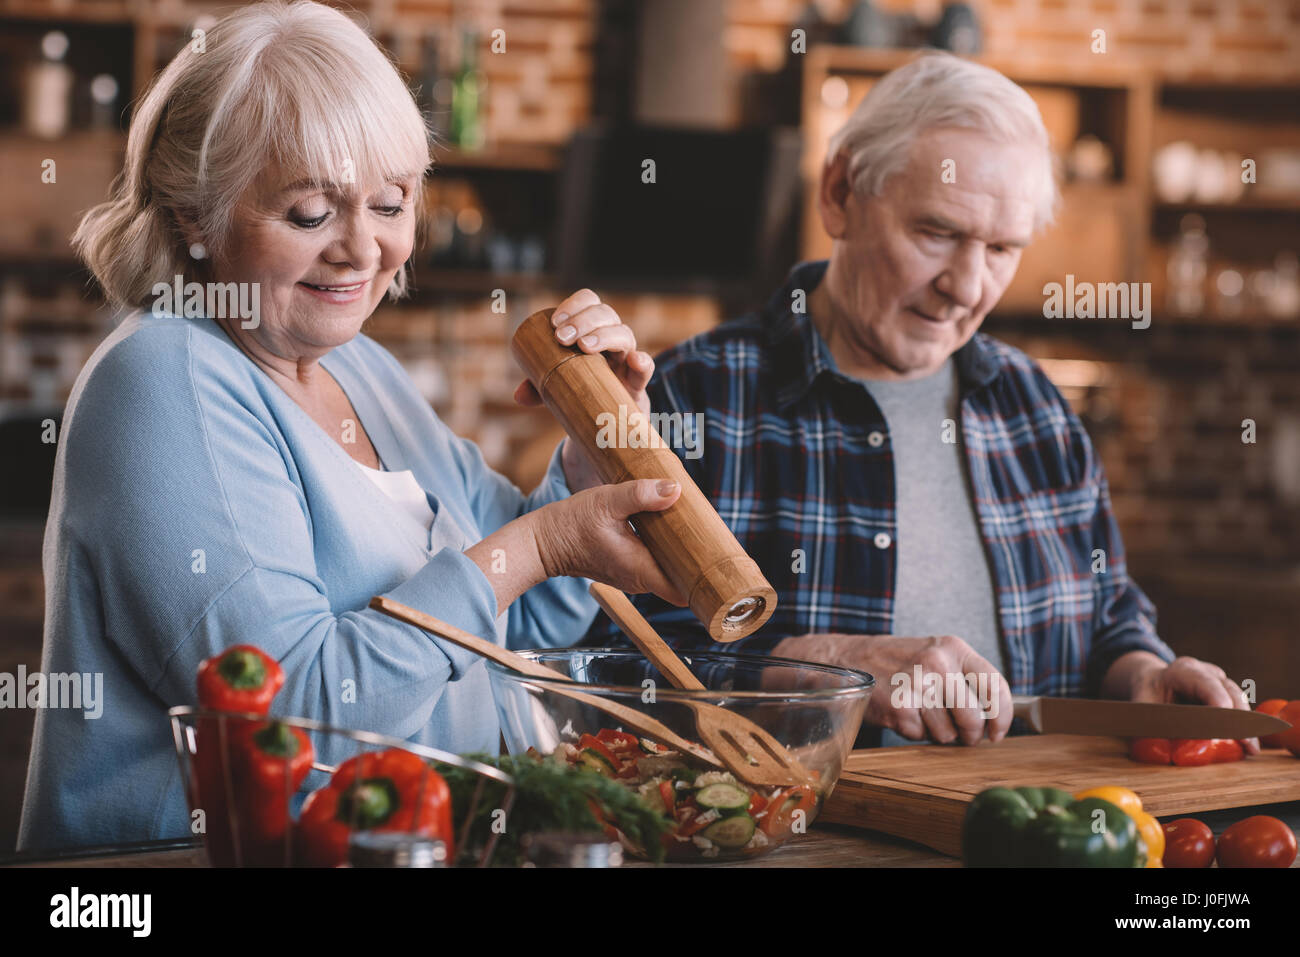 portrait of senior couple cooking together at home - Stock Image